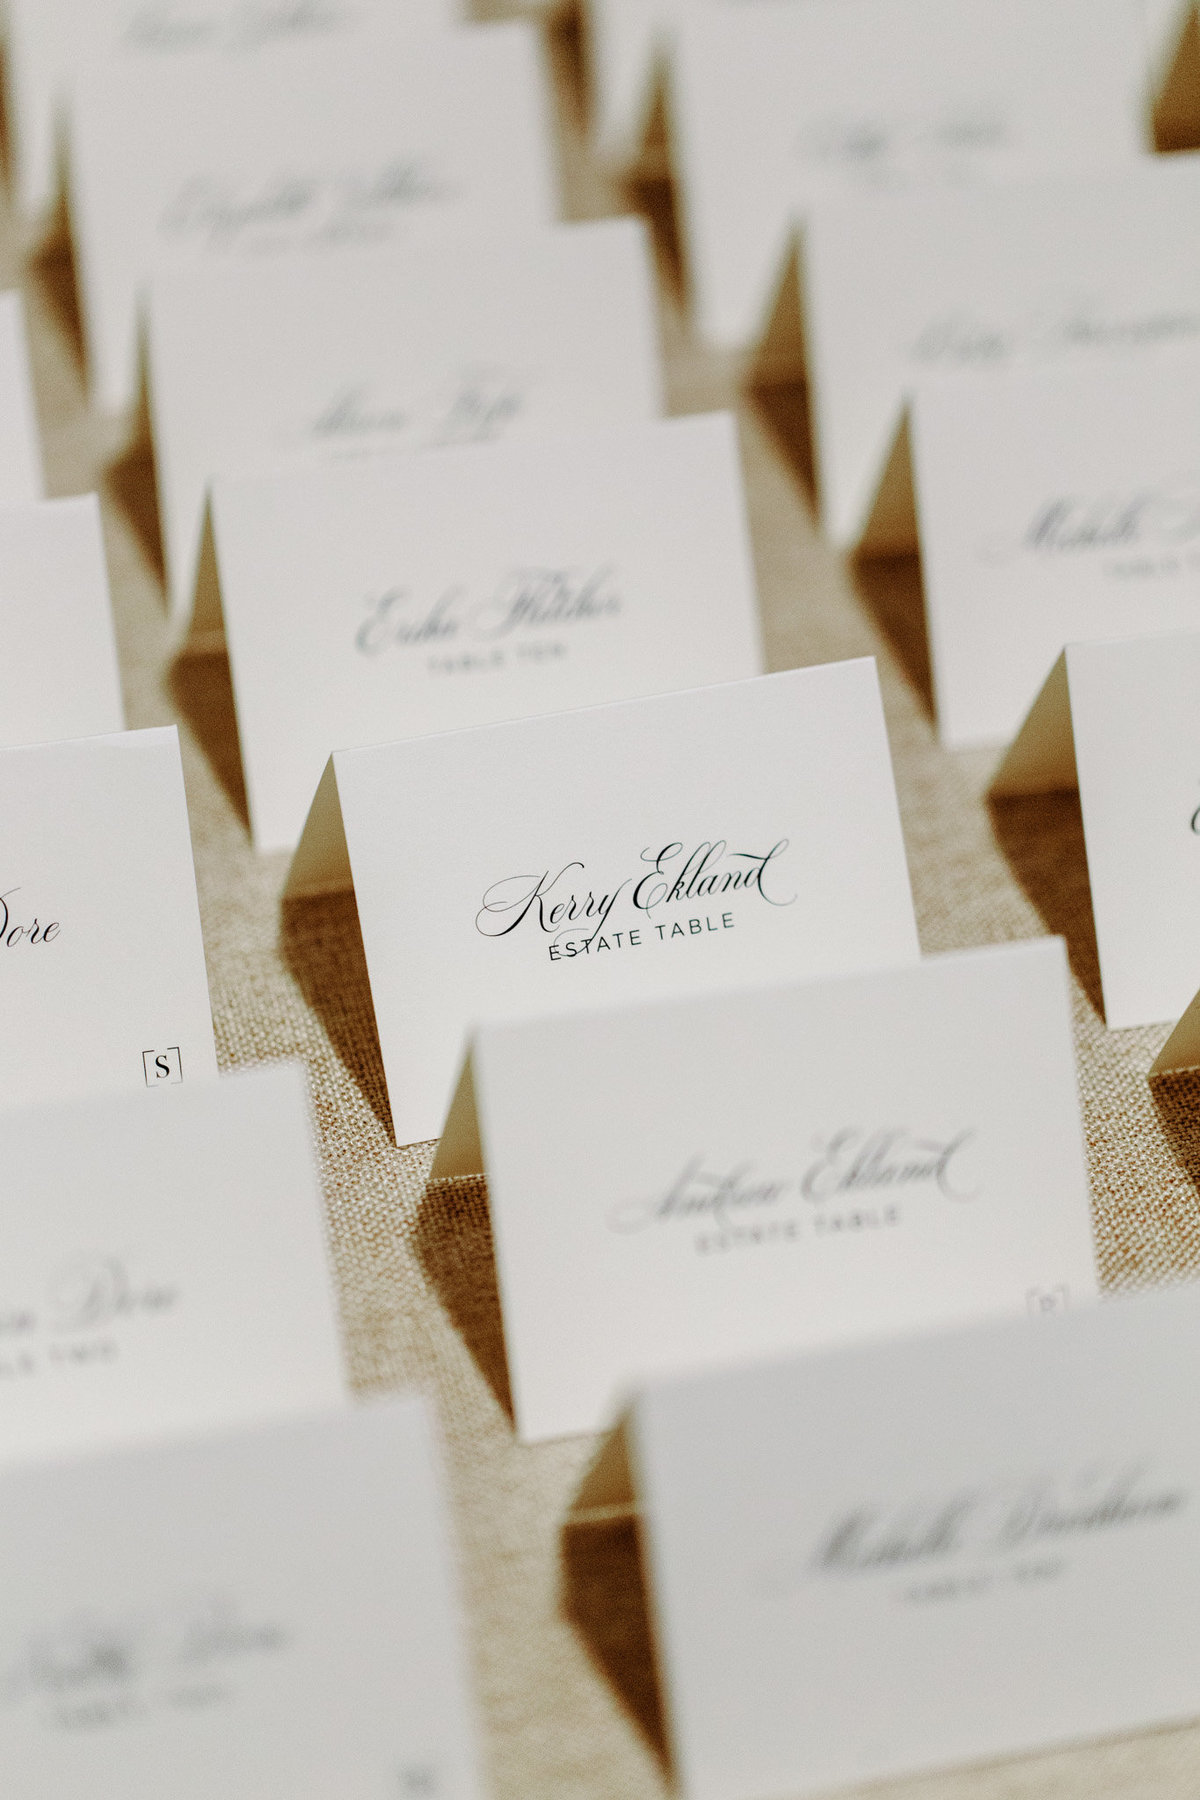 These name place cards are the perfect compliment to an elegant wedding table setting.  Photo by Biltmore Ballrooms wedding photographer Rebecca Cerasani.